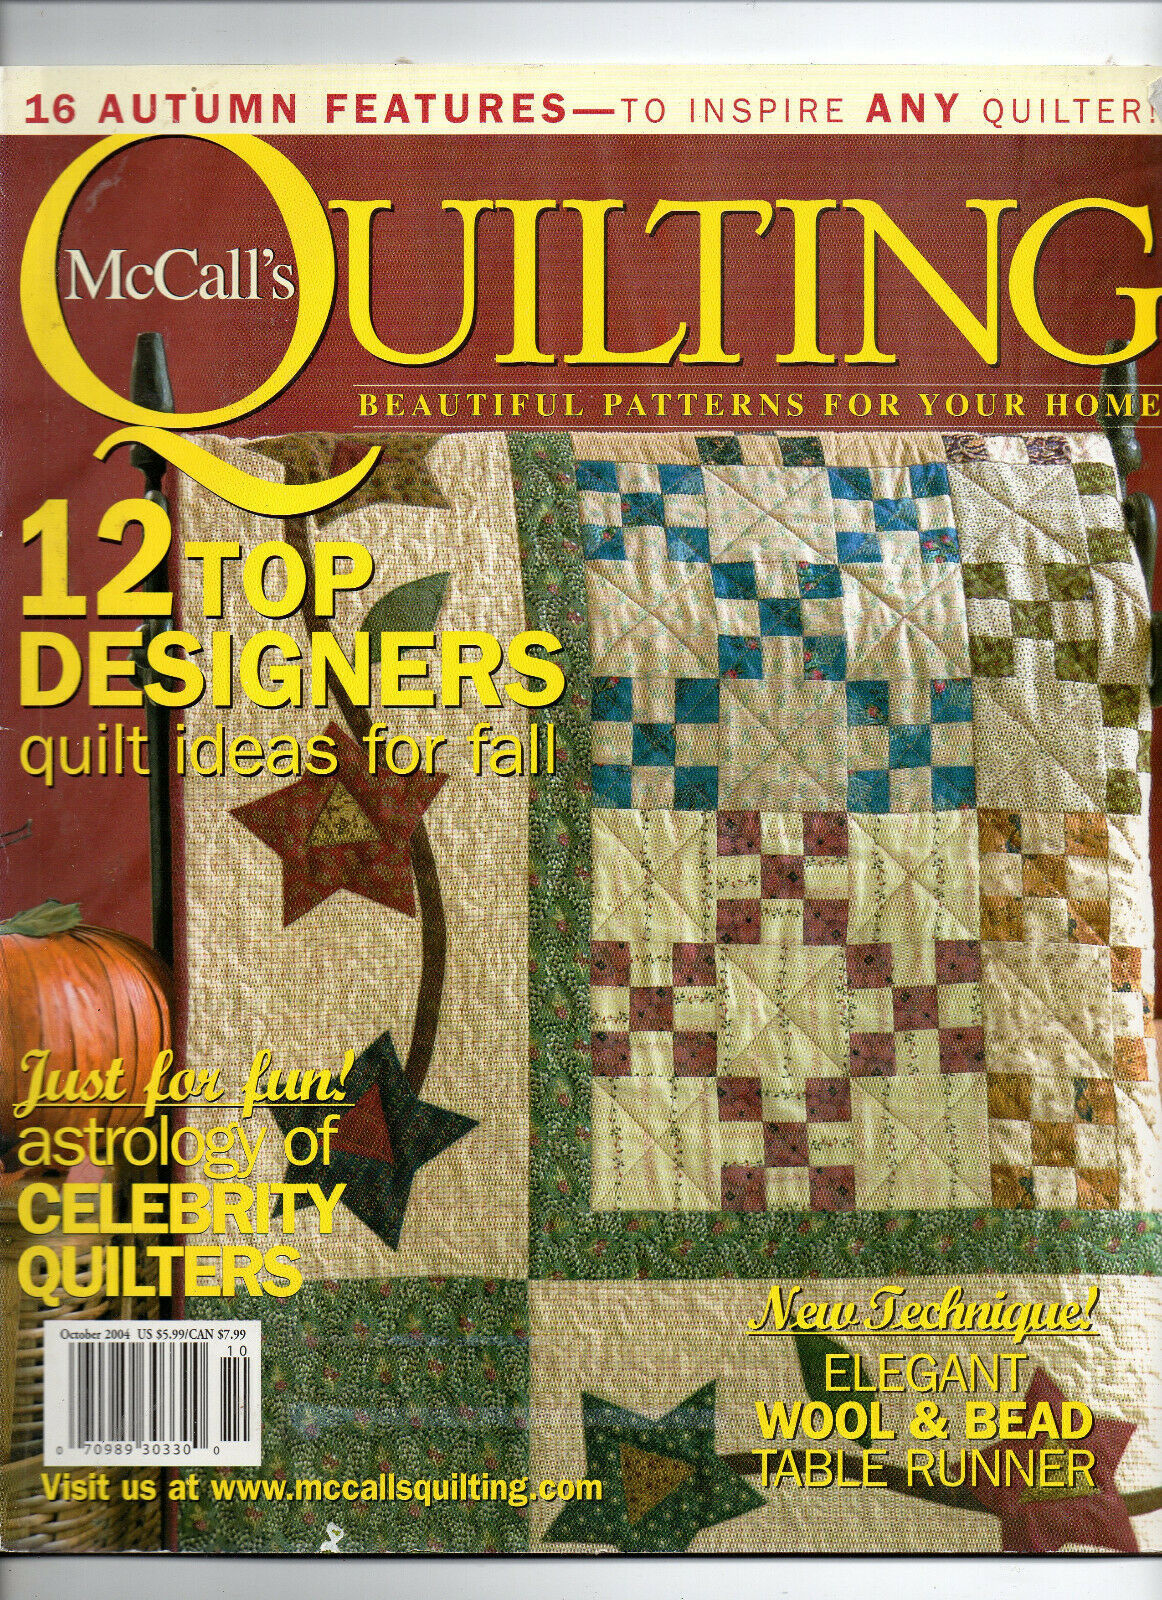 Primary image for Oct 2004/McCall's Quilting/Preowned Craft Magazine